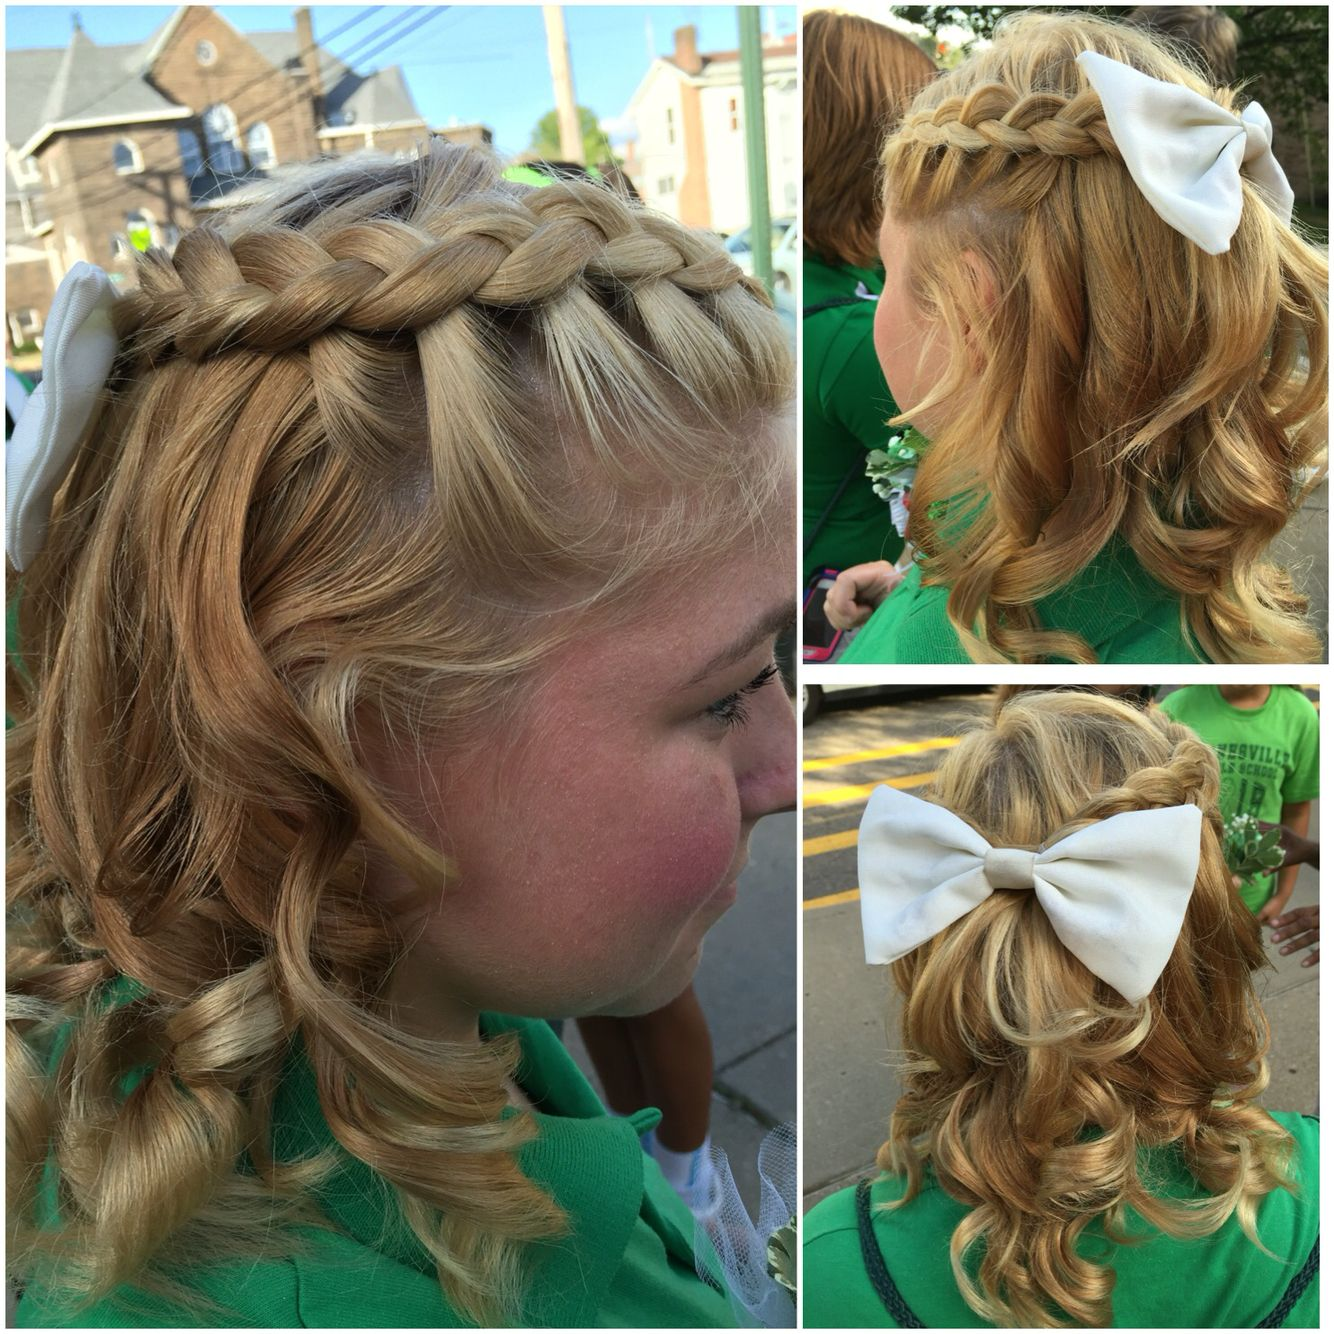 Cute Half Up Half Down Dutch Braid Hair Do For Medium To Long Hair